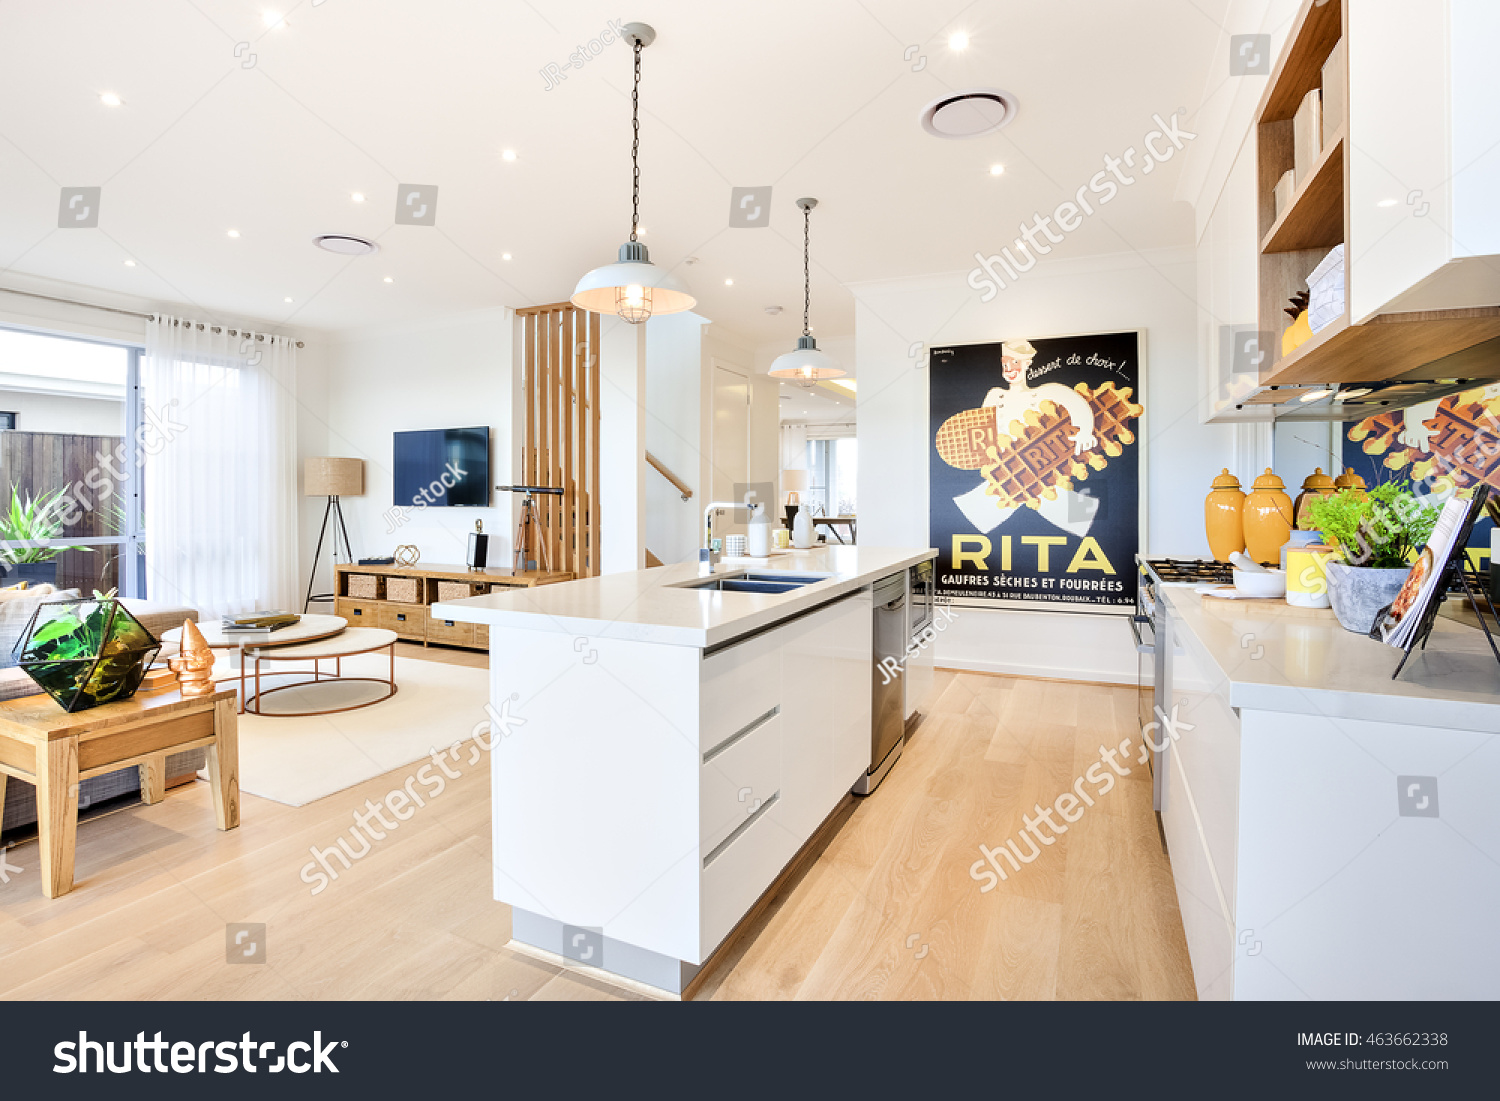 Modern Kitchen With A Wooden Floor Counter Top Beside Pantry Cupboards Fill Utensils